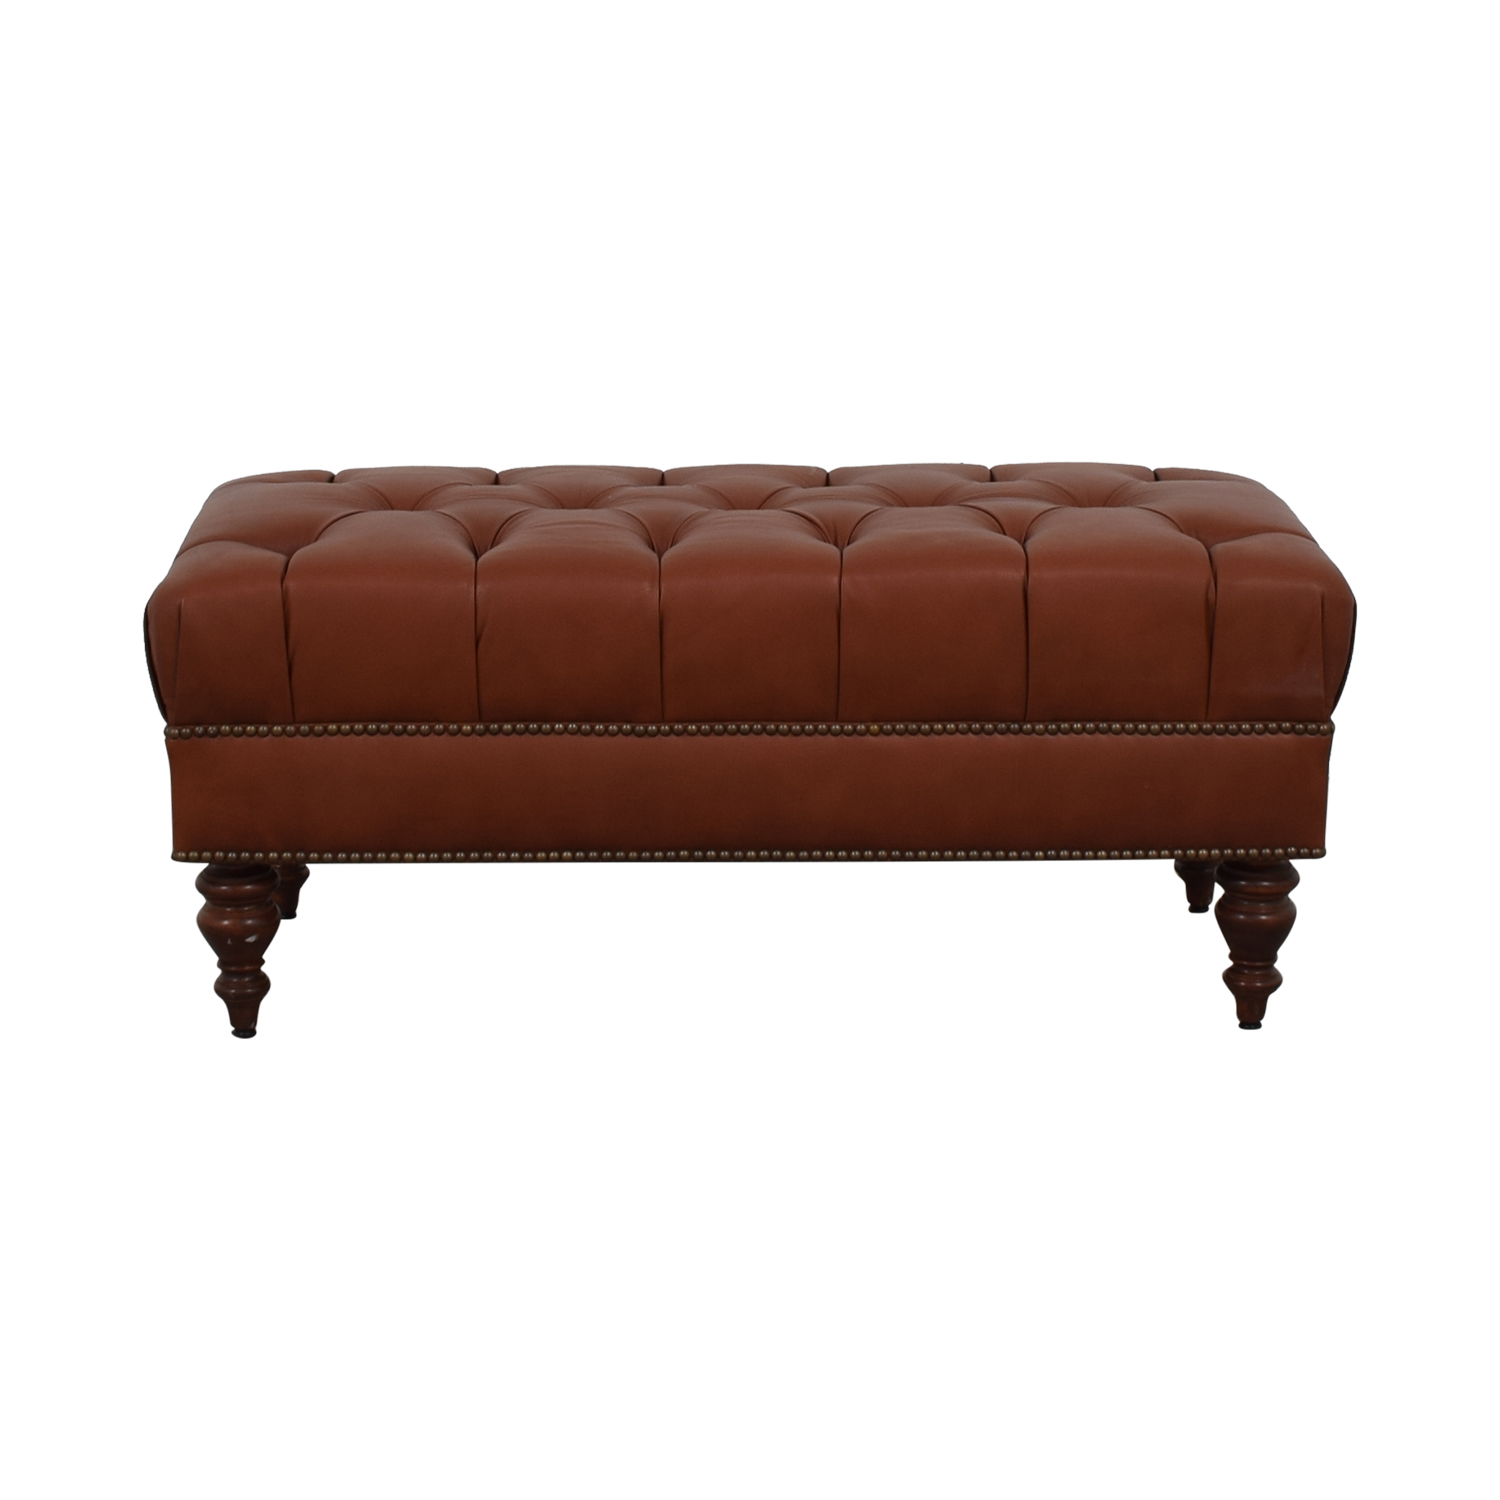 Furniture Masters Furniture Masters Tufted Ottoman used